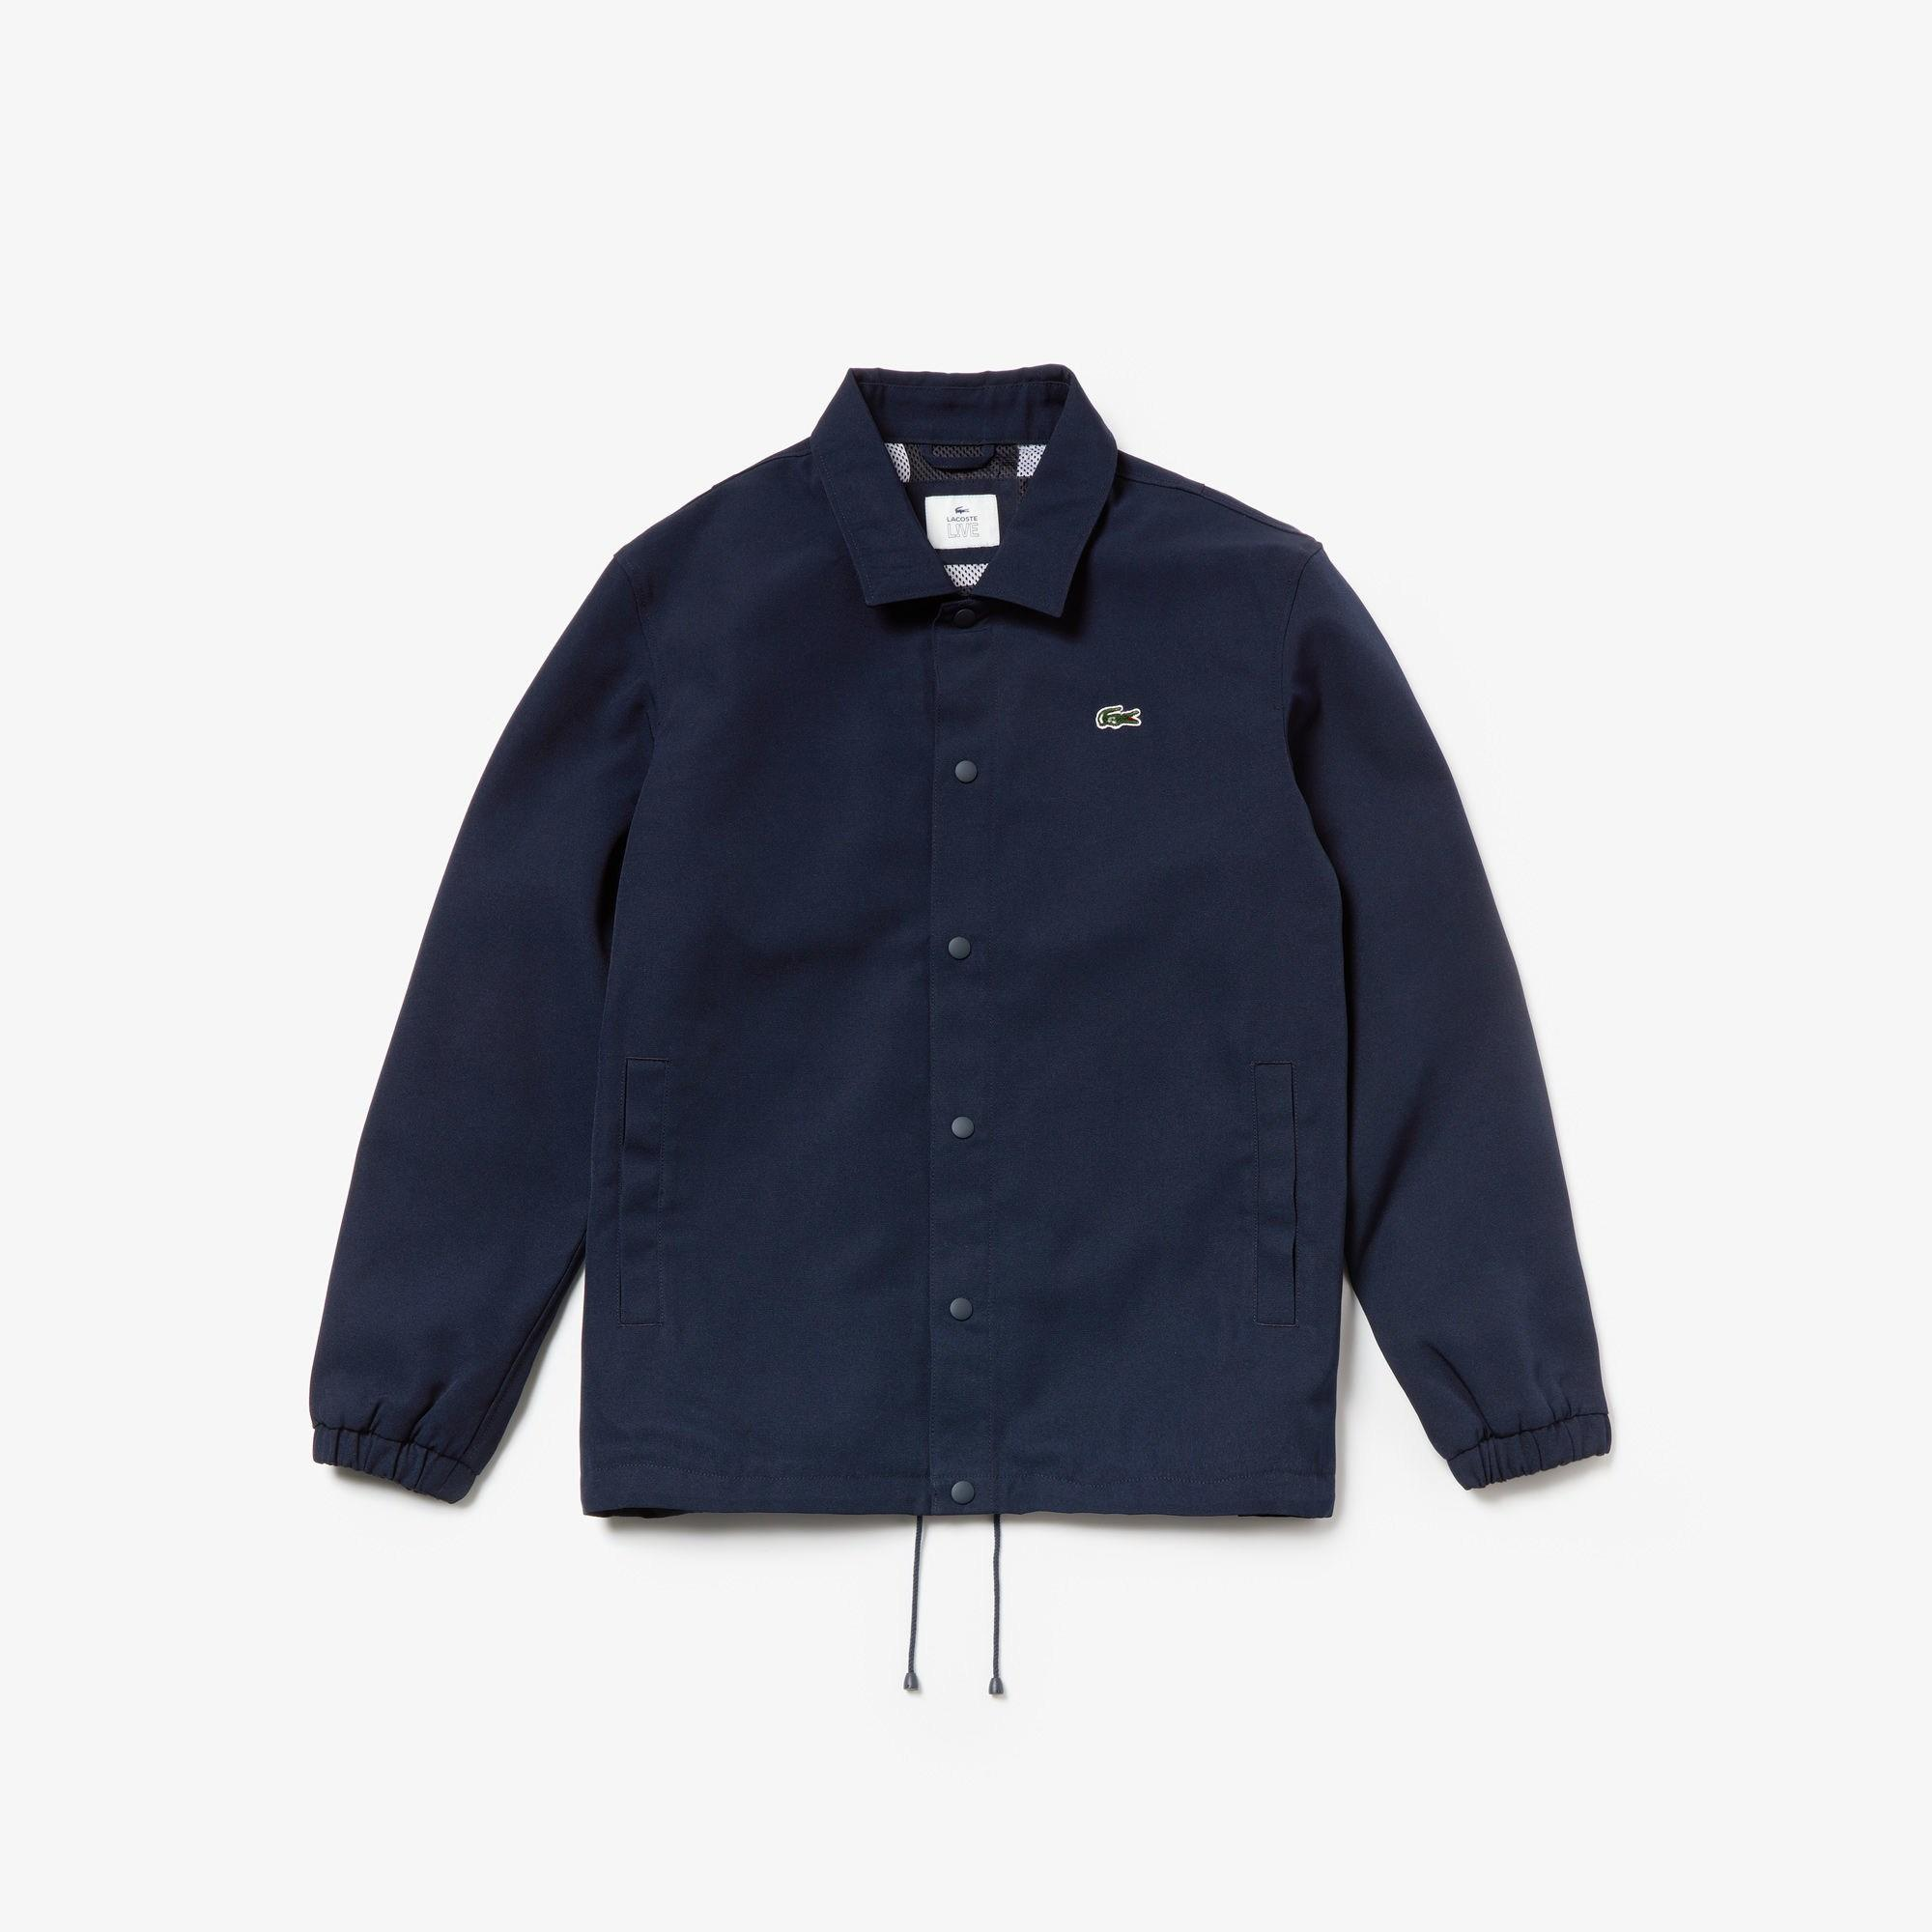 61df592b9b Lacoste Live Canvas Jacket in Blue for Men - Lyst